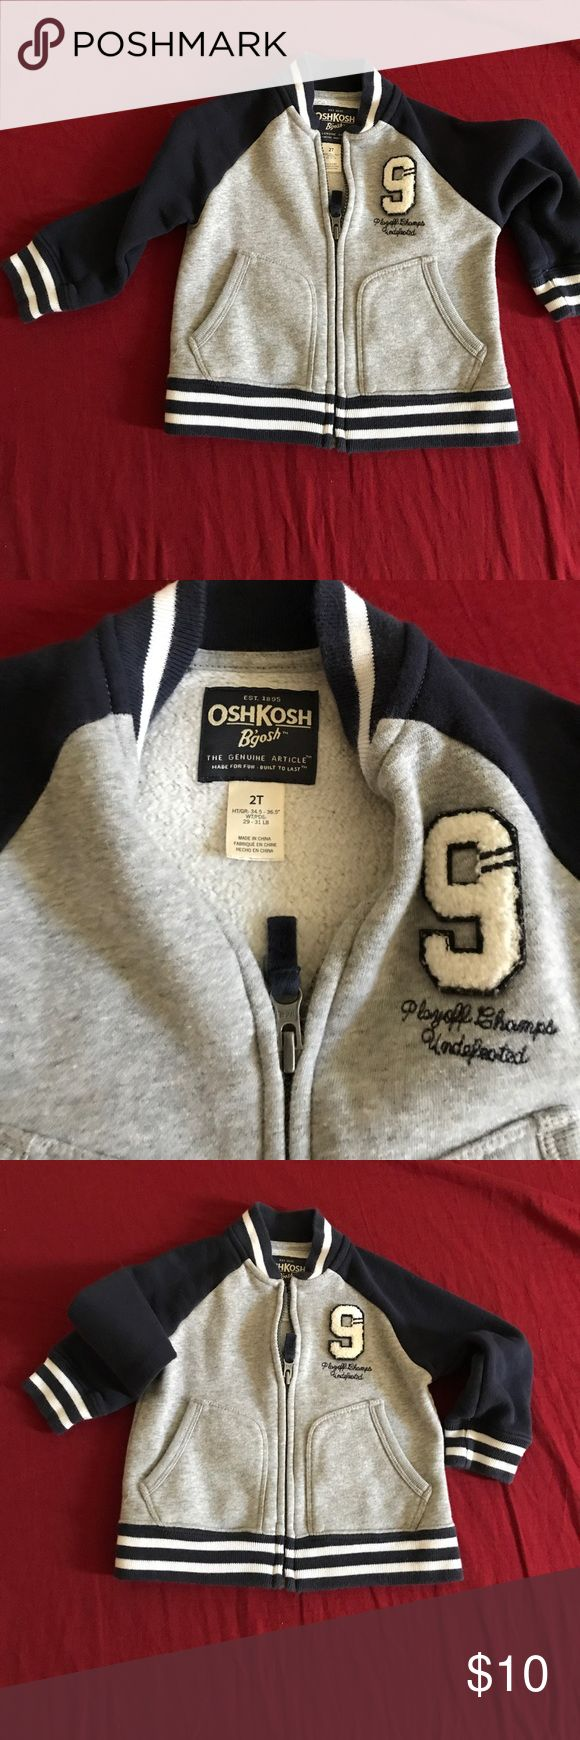 football Jacket for 2T boy Excellent condition football jacket for a boy. 80% Cotton, 20% polyester. Pair it with jeans and t shirt. Smoke free and pet free home. OshKosh B'gosh Jackets & Coats